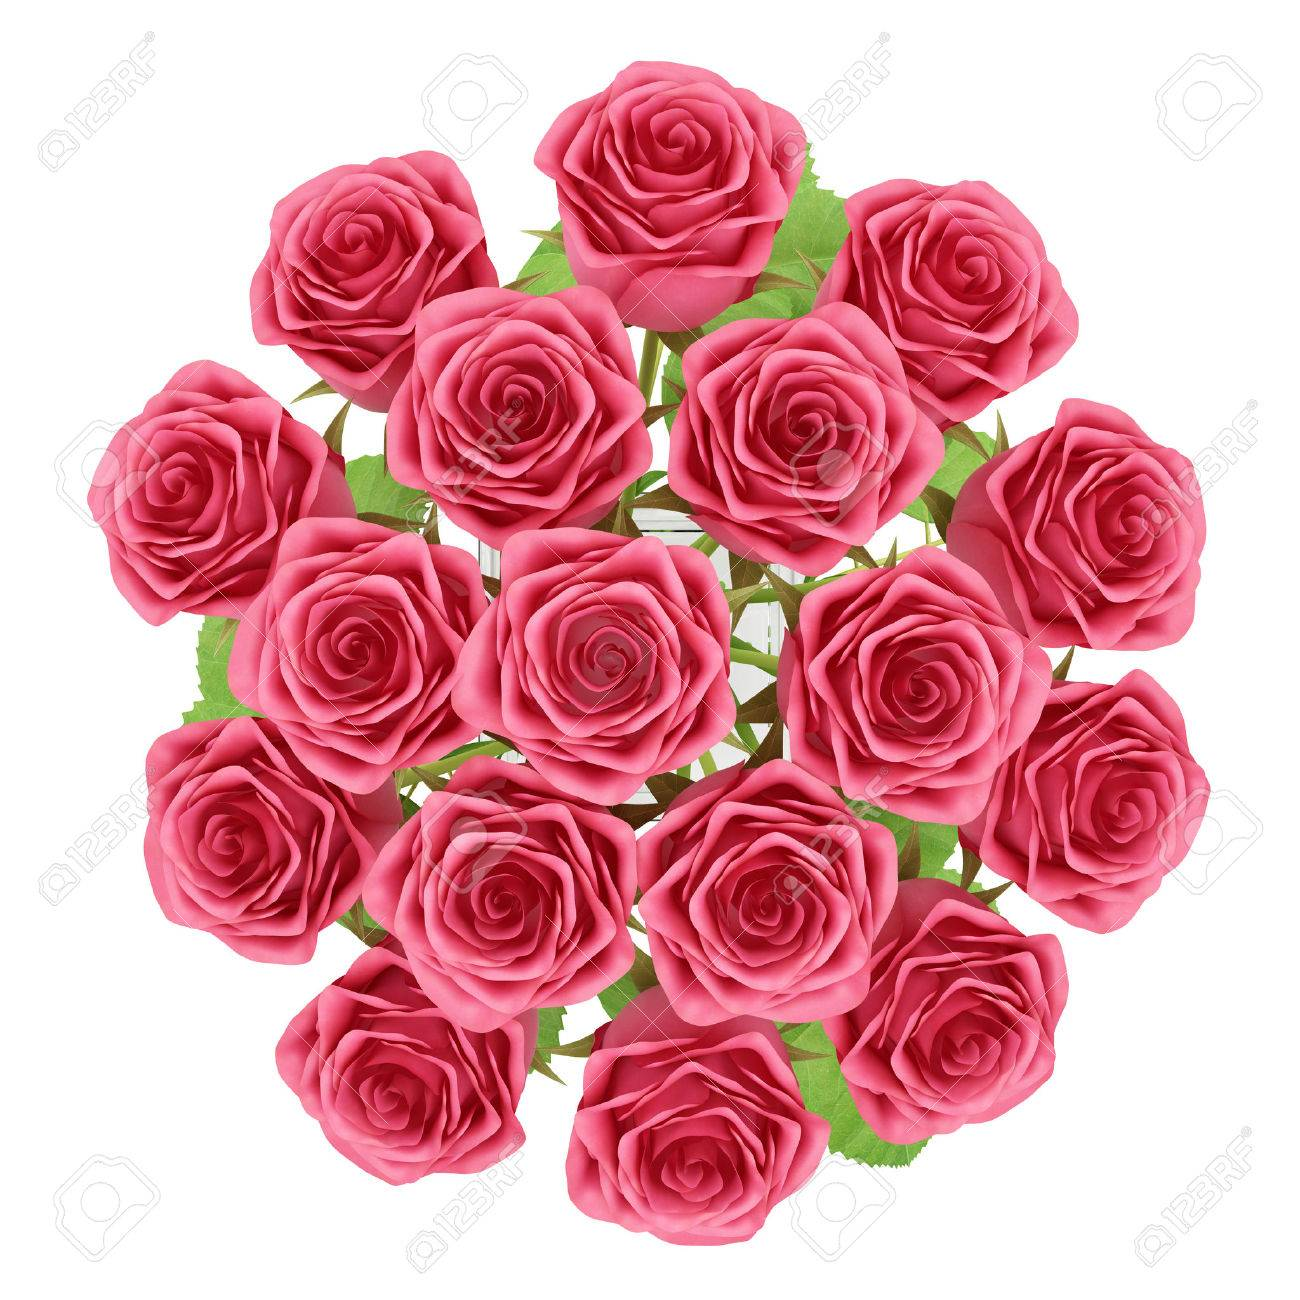 Top view of red roses in glass vase isolated on white background top view of red roses in glass vase isolated on white background 3d illustration stock reviewsmspy